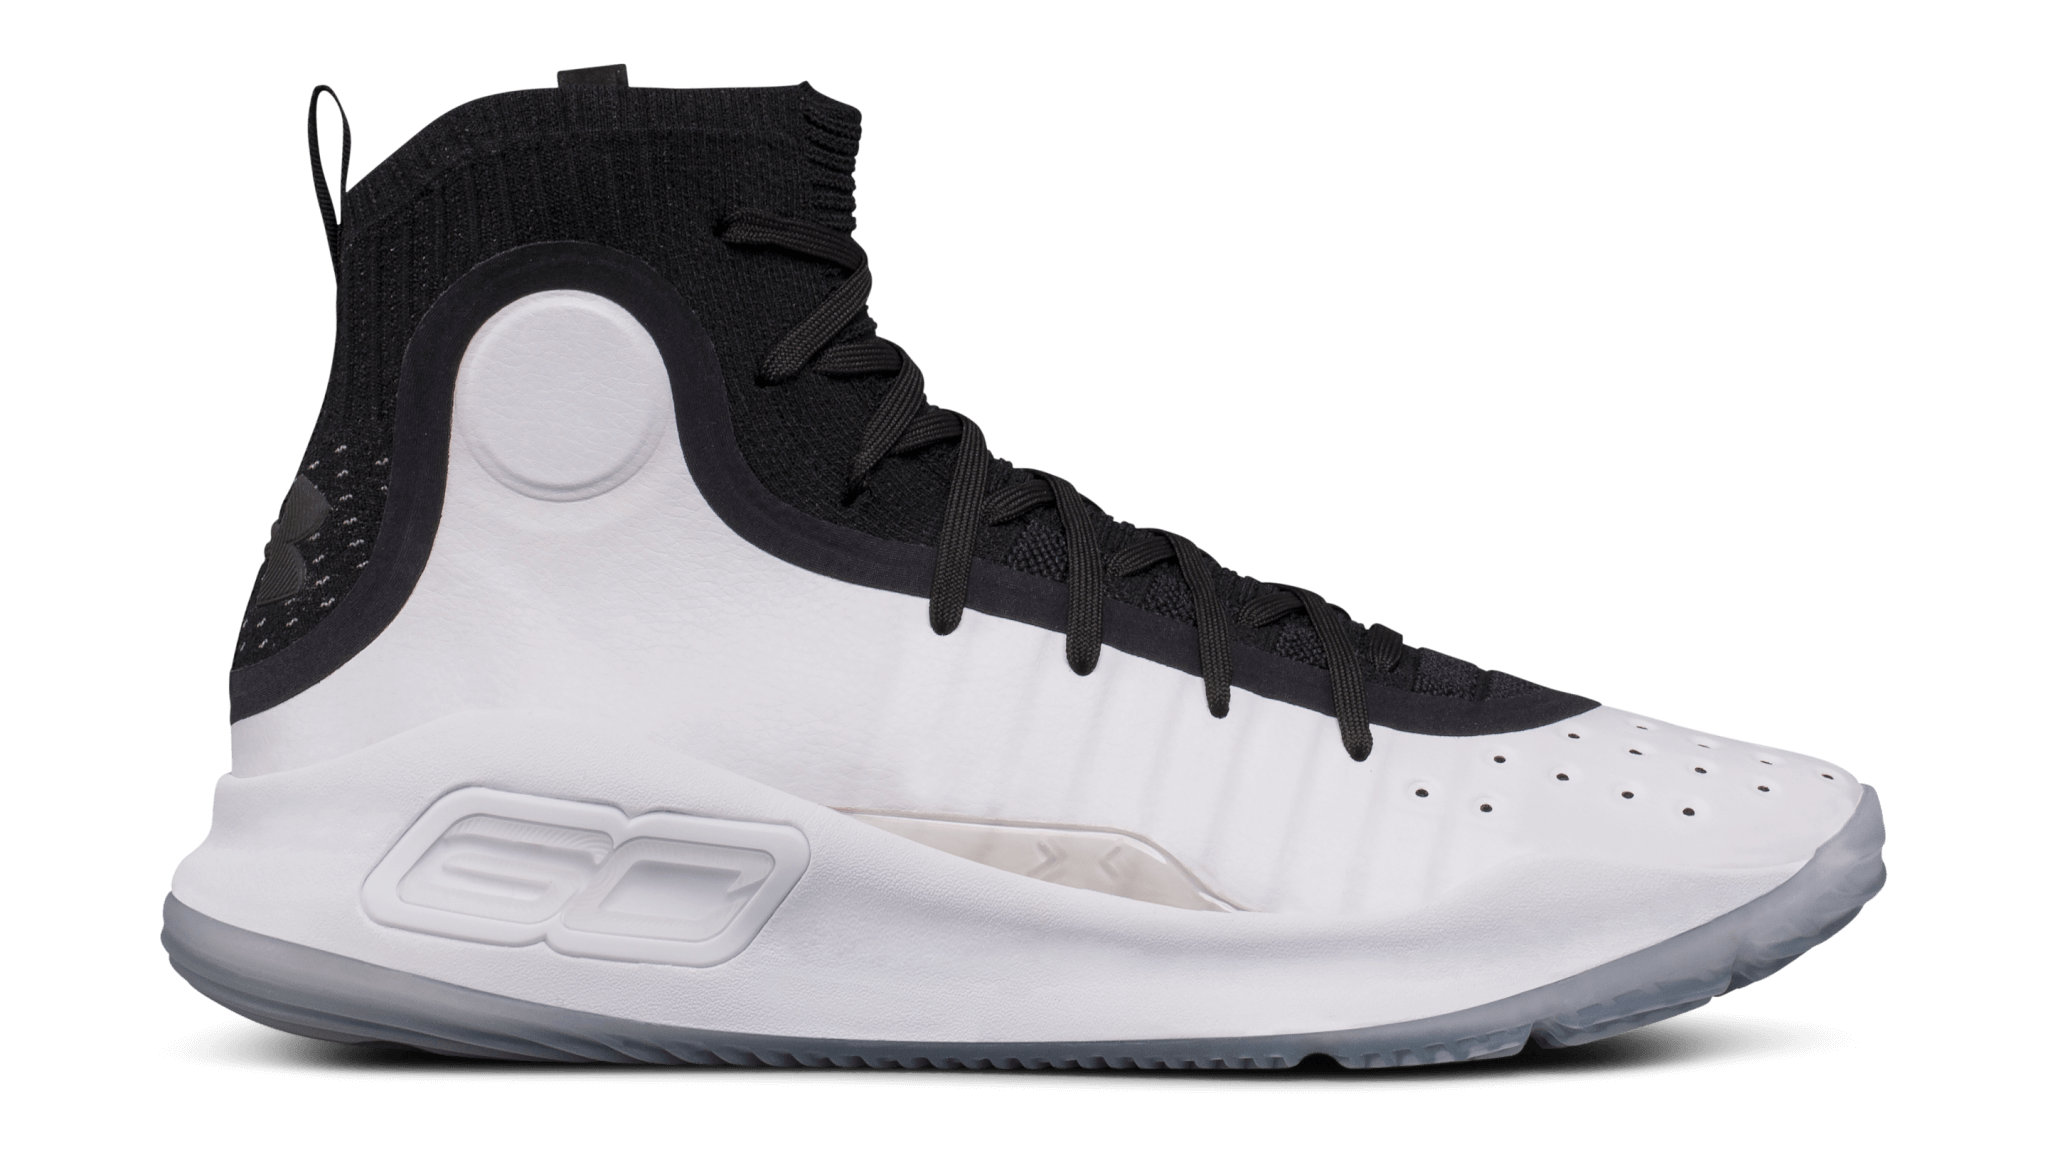 73cfb5d6 Under Armour Curry 4 Performance Review